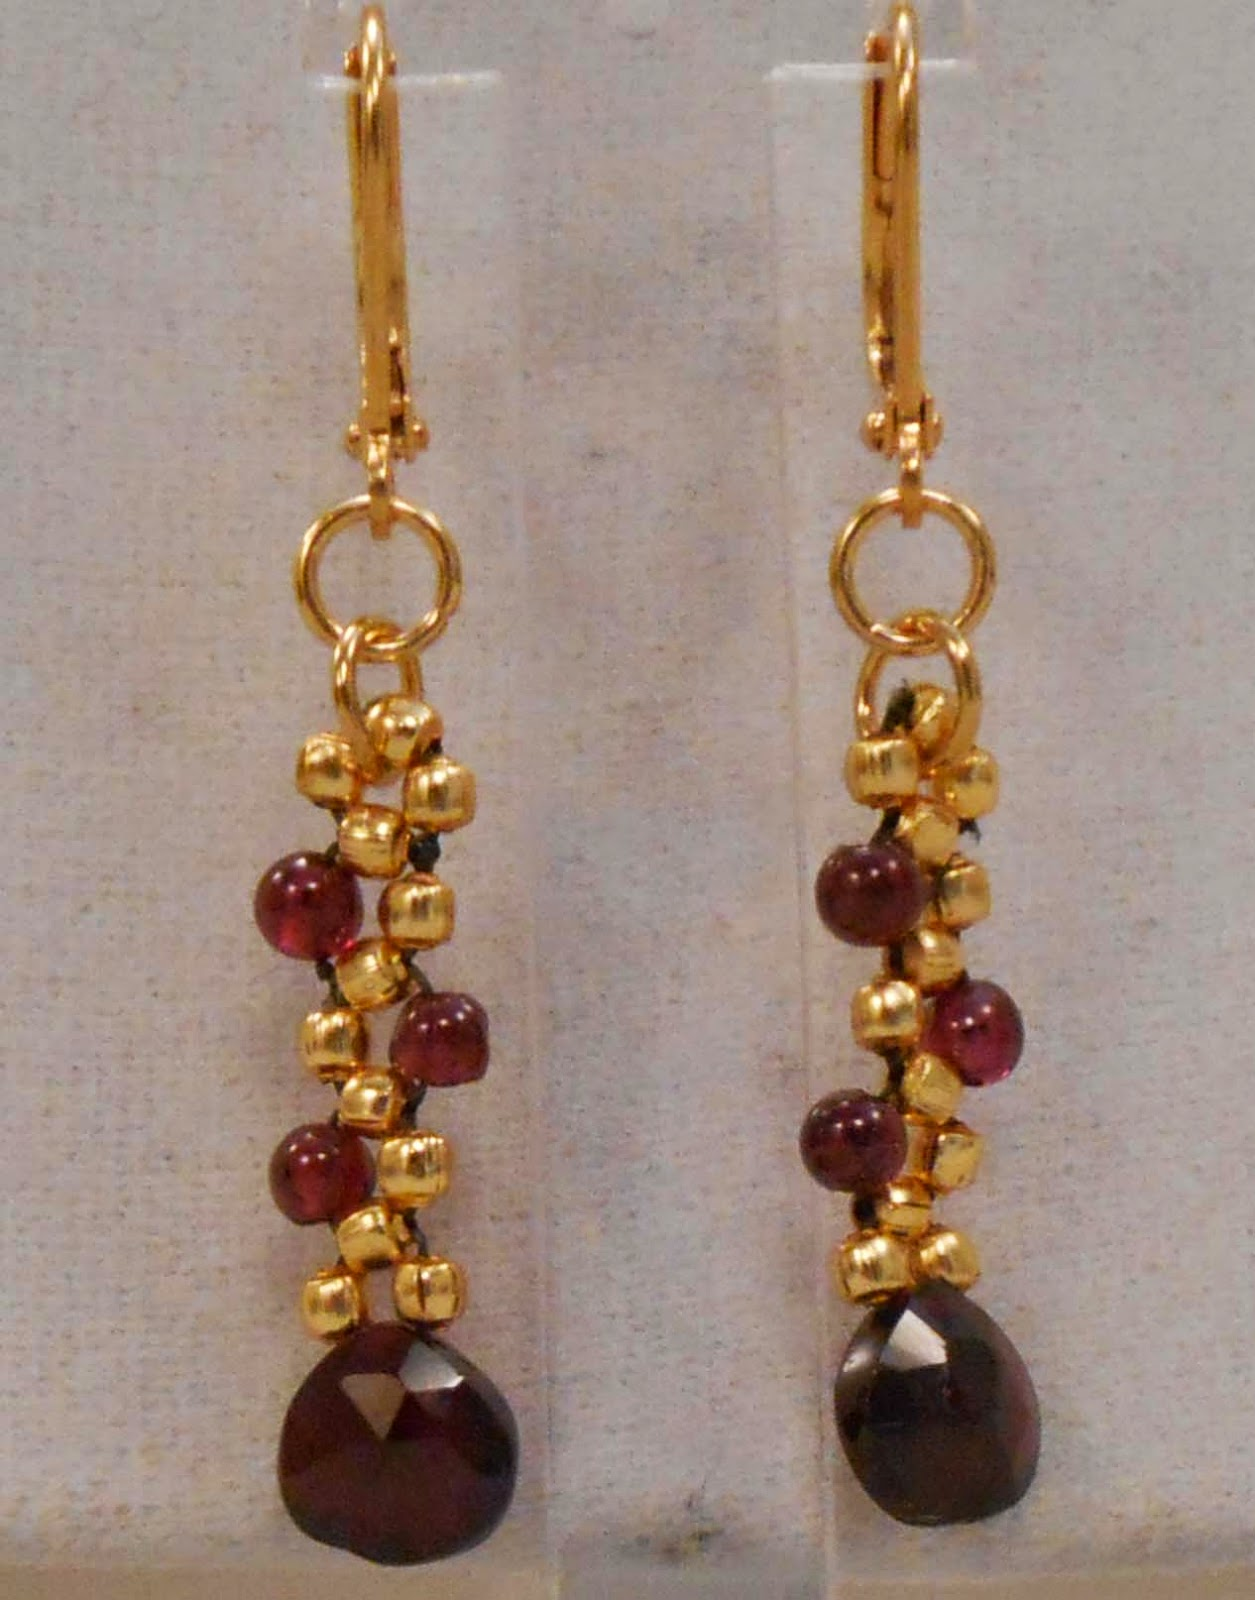 This Necklace And Earrings Are Made From Garnet Precious Stone Flat Teardrops Round Beads With Gold Metal